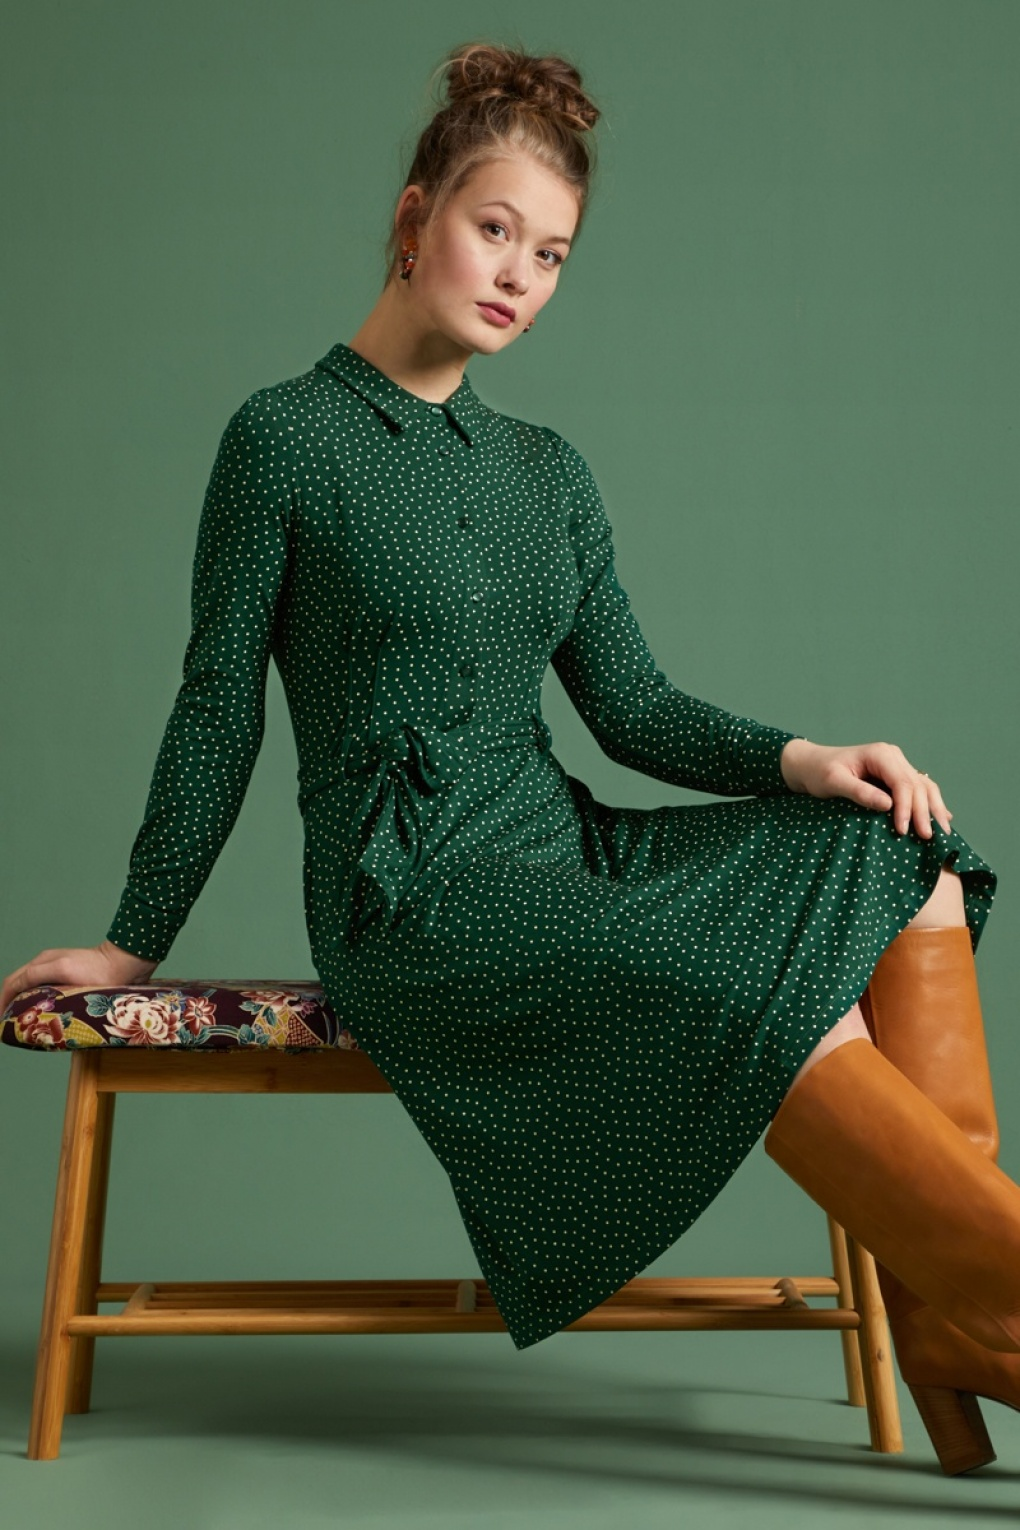 Vintage Style Dresses | Vintage Inspired Dresses 60s Sheeva Little Dots Dress in Pine Green £97.73 AT vintagedancer.com